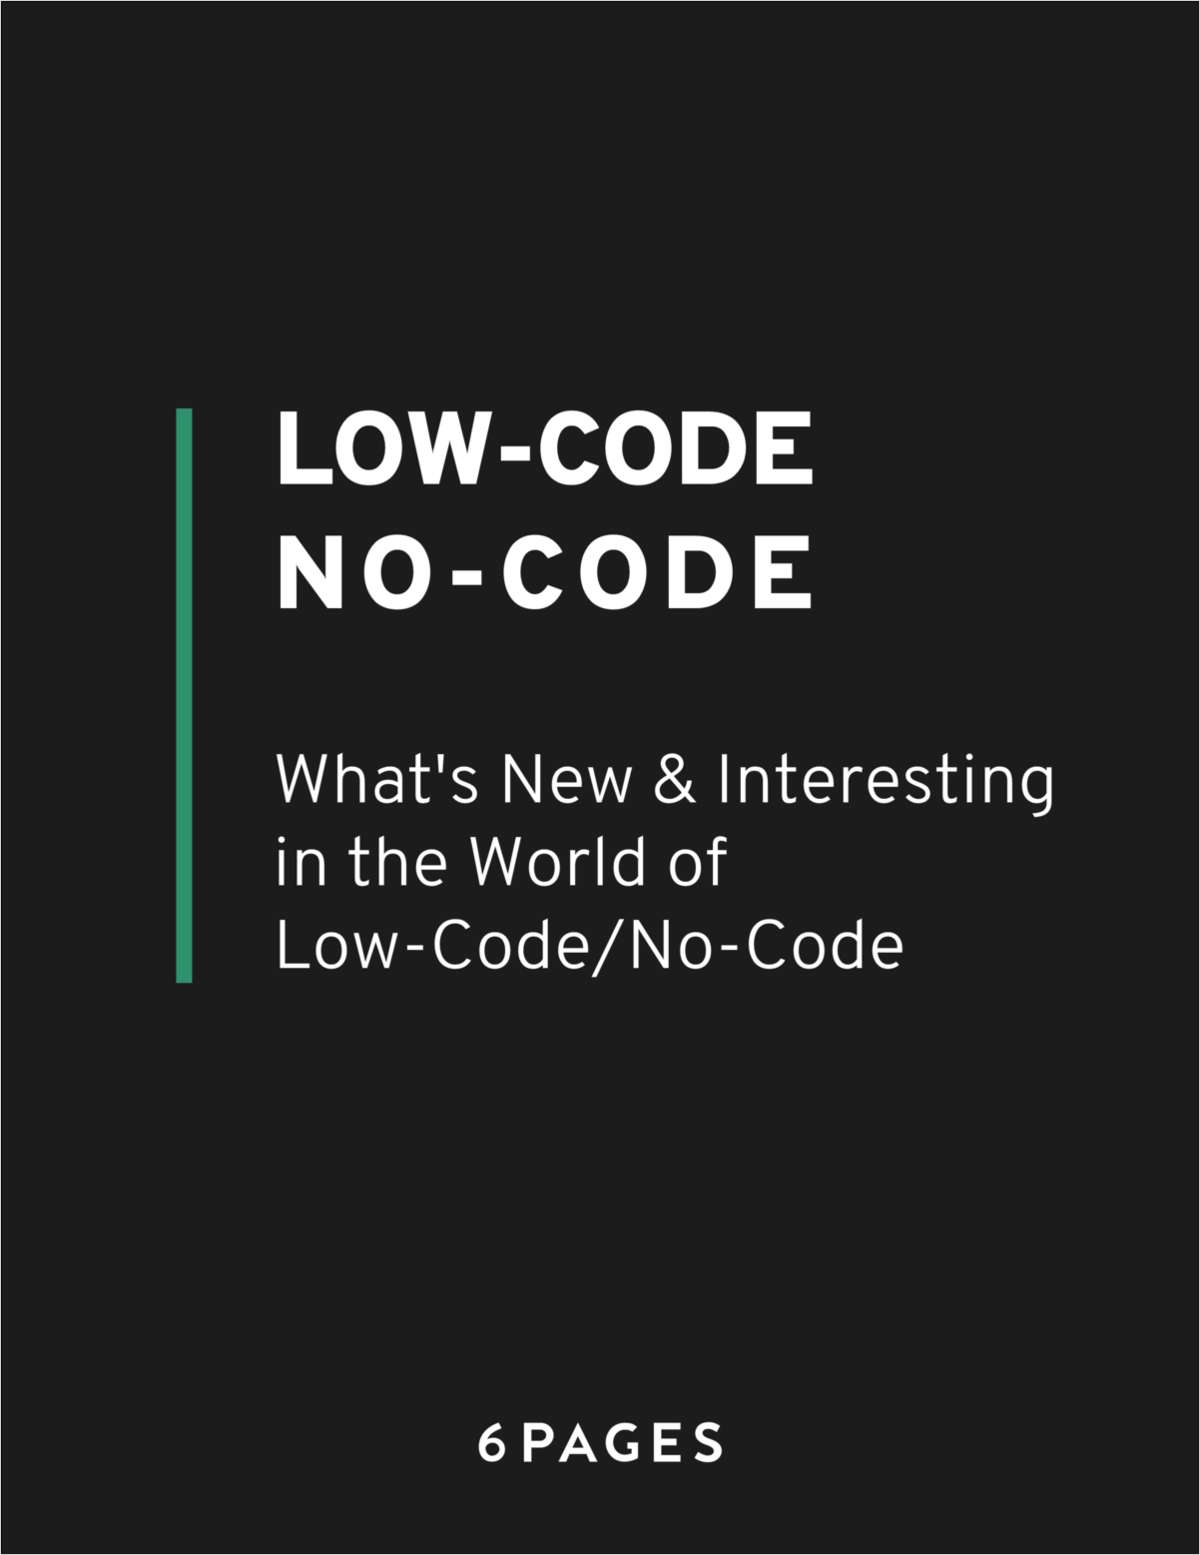 What's New & Interesting In Low-Code/No-Code